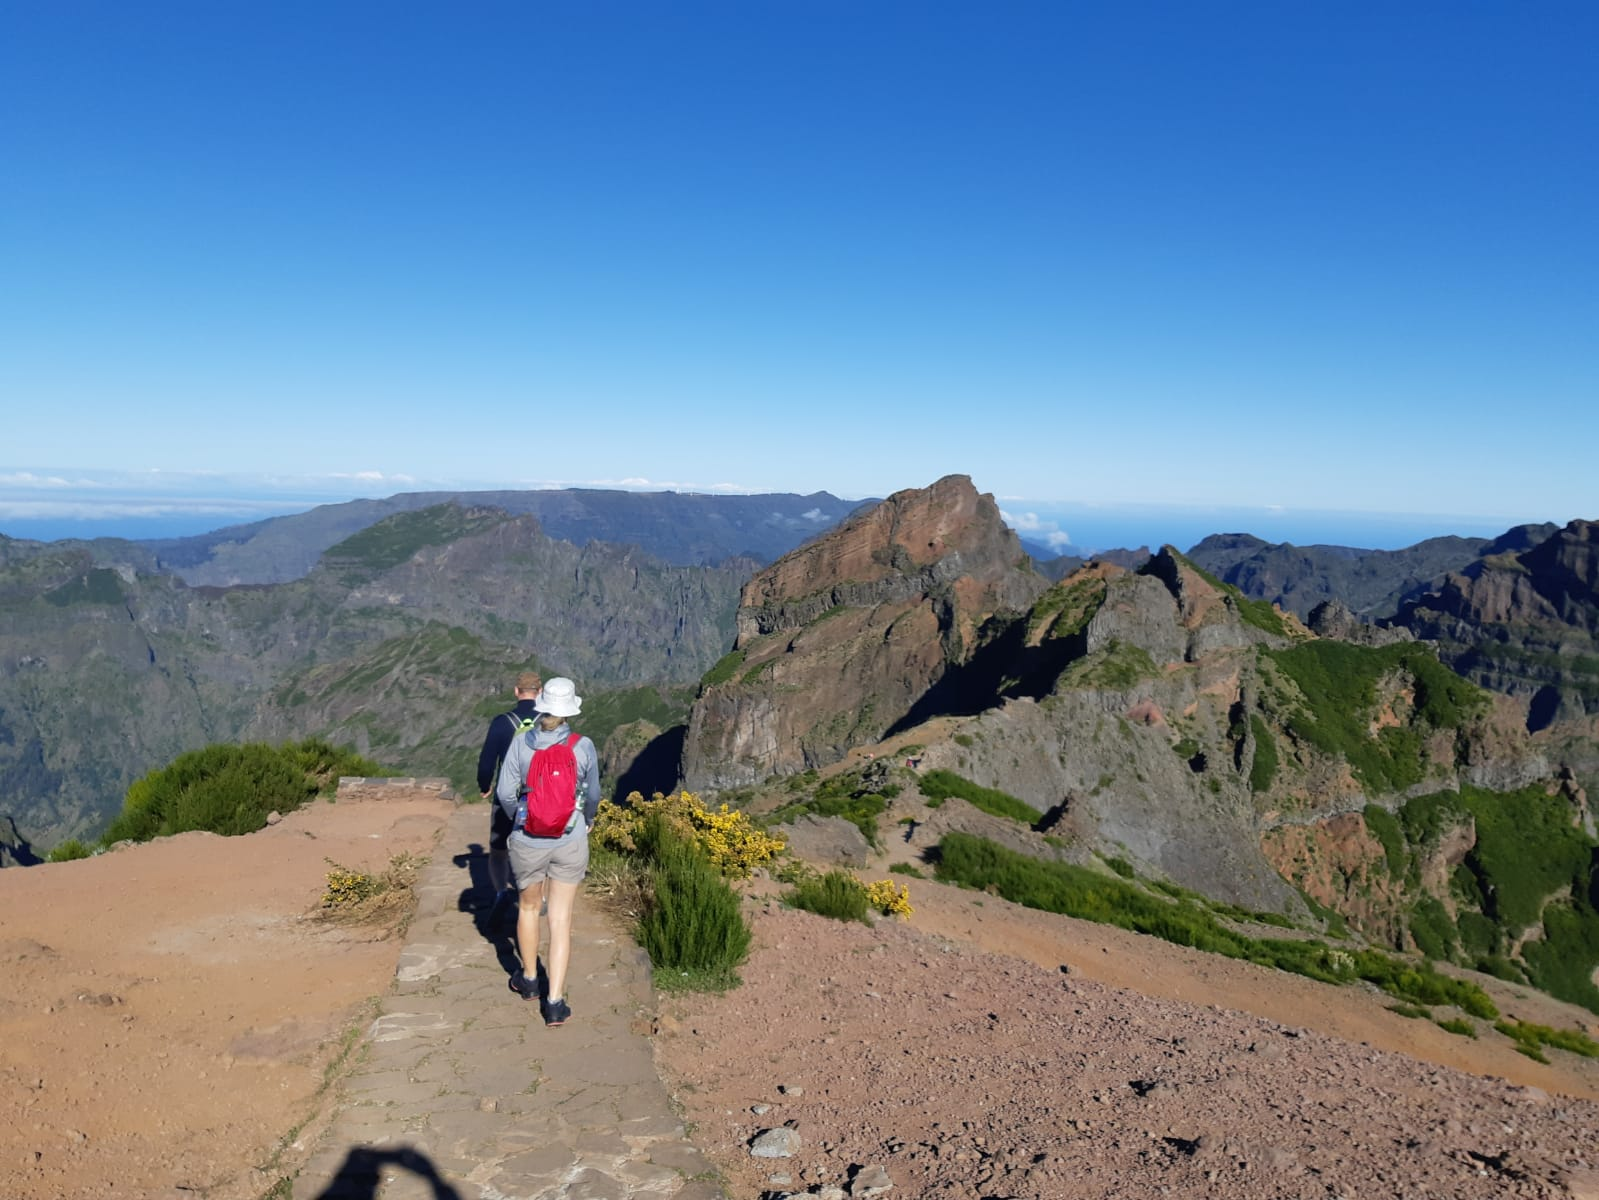 Day 4 – Hiking Week – Pico do Areeiro to Pico Ruivo (Highest Peaks)